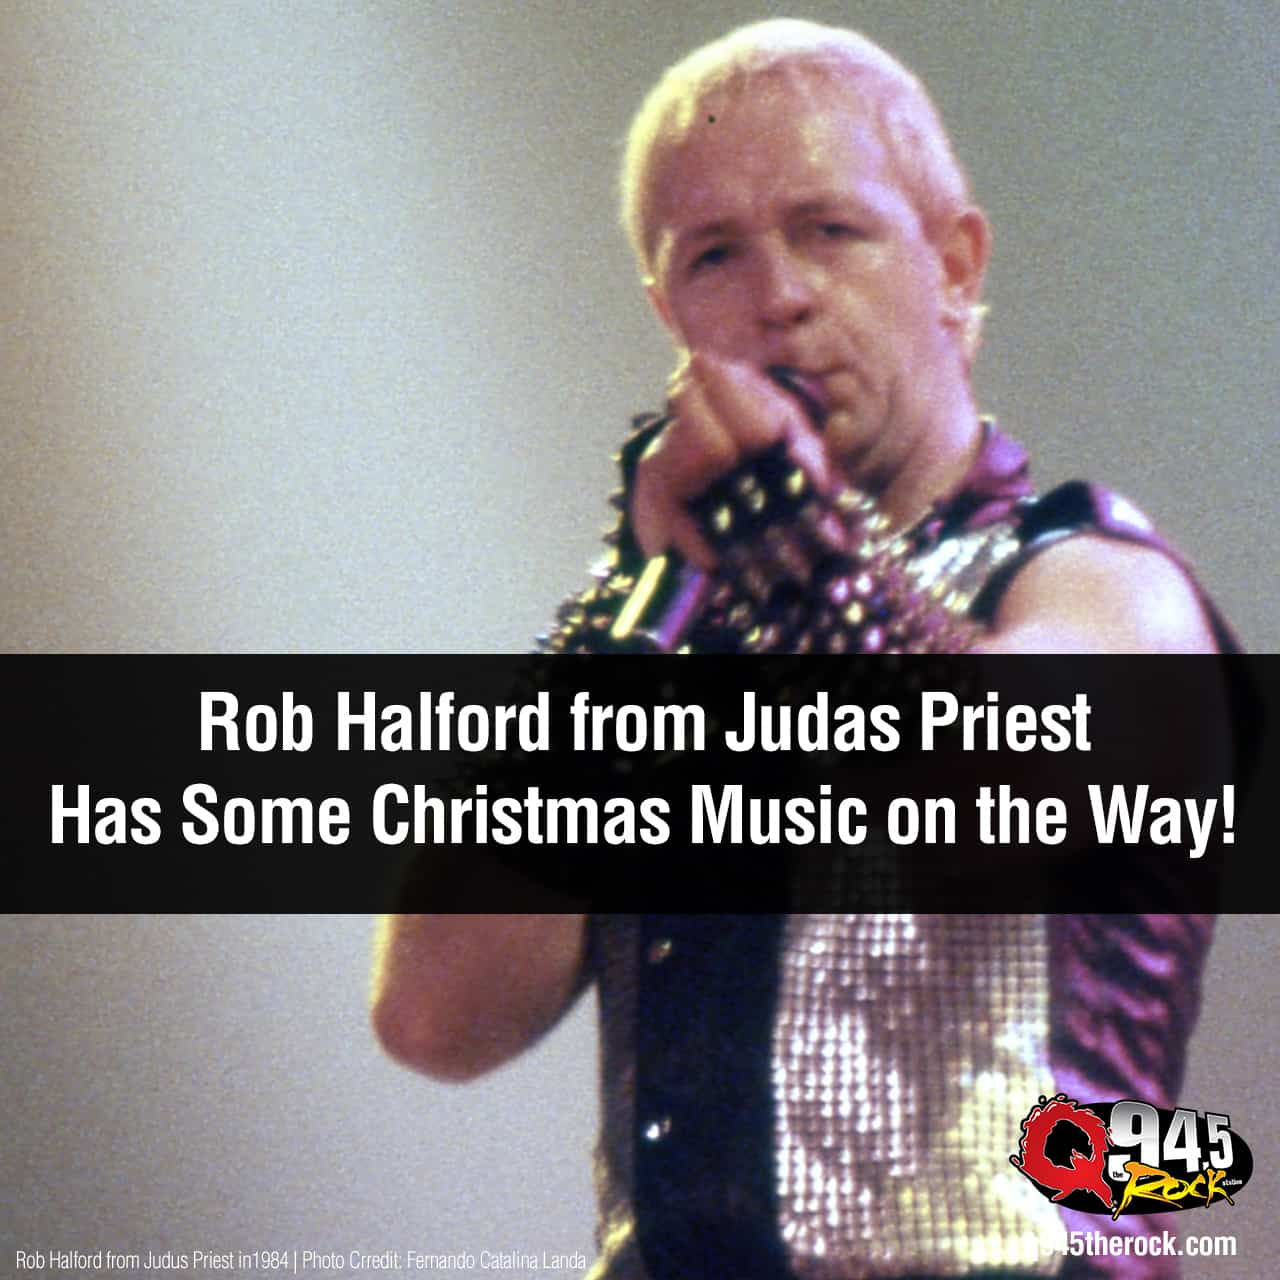 Rob Halford from Judas Priest Has Some Christmas Music on the Way!